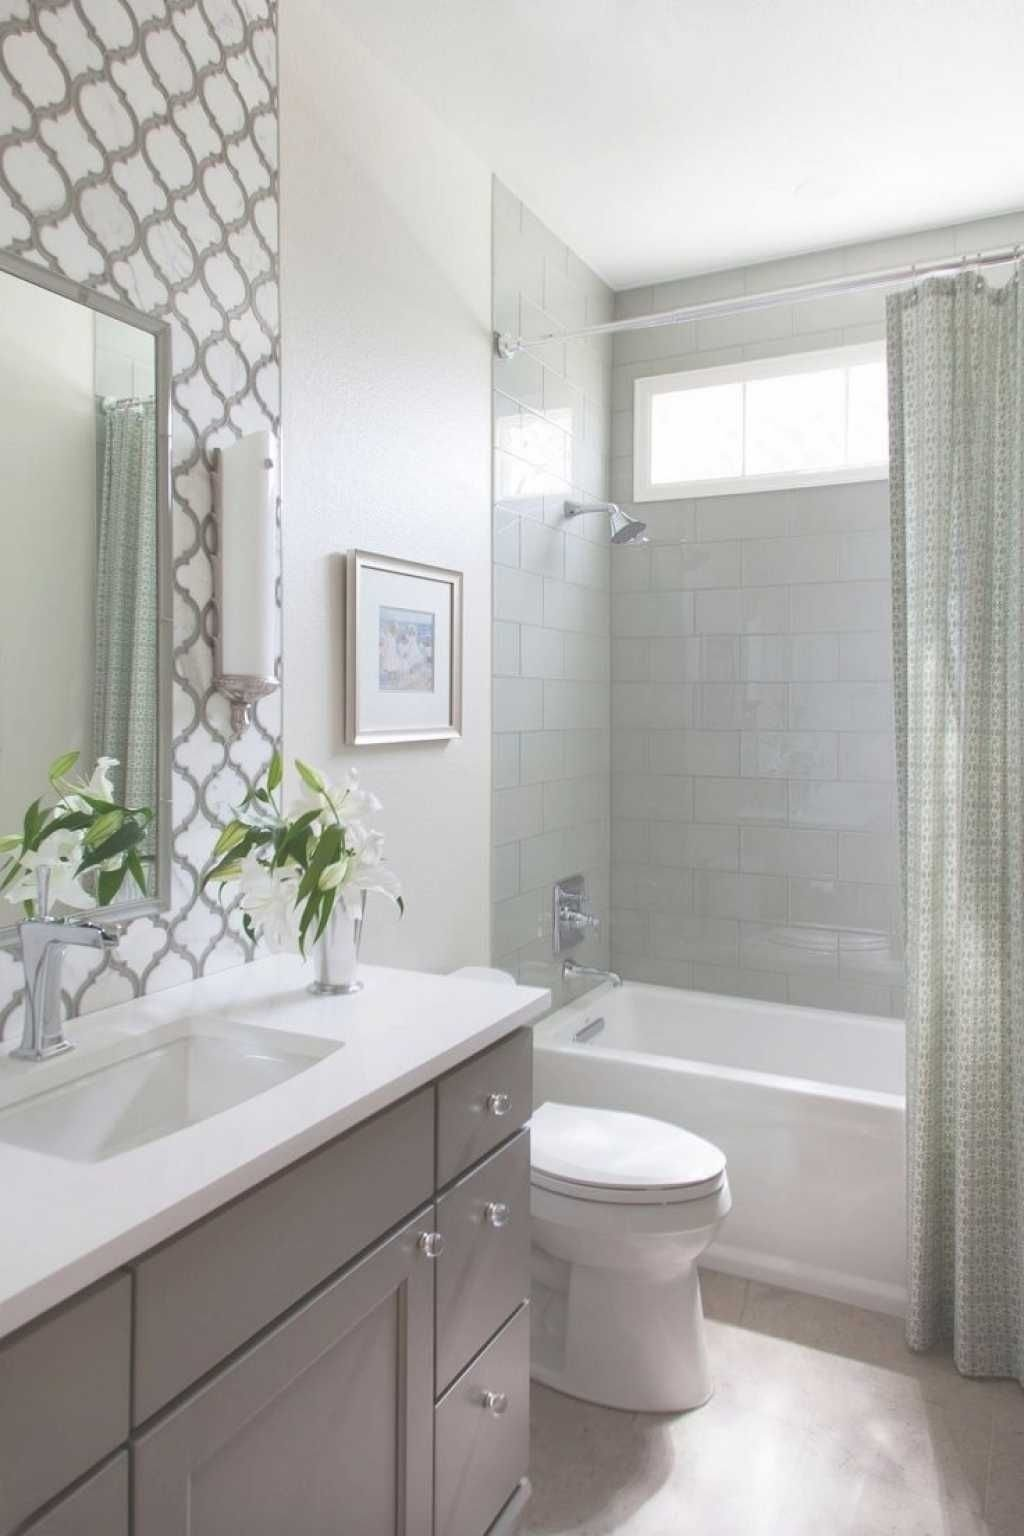 10 Spectacular Bath Ideas For Small Bathrooms small bathroom tub shower combo remodeling ideas http zoladecor 3 2020